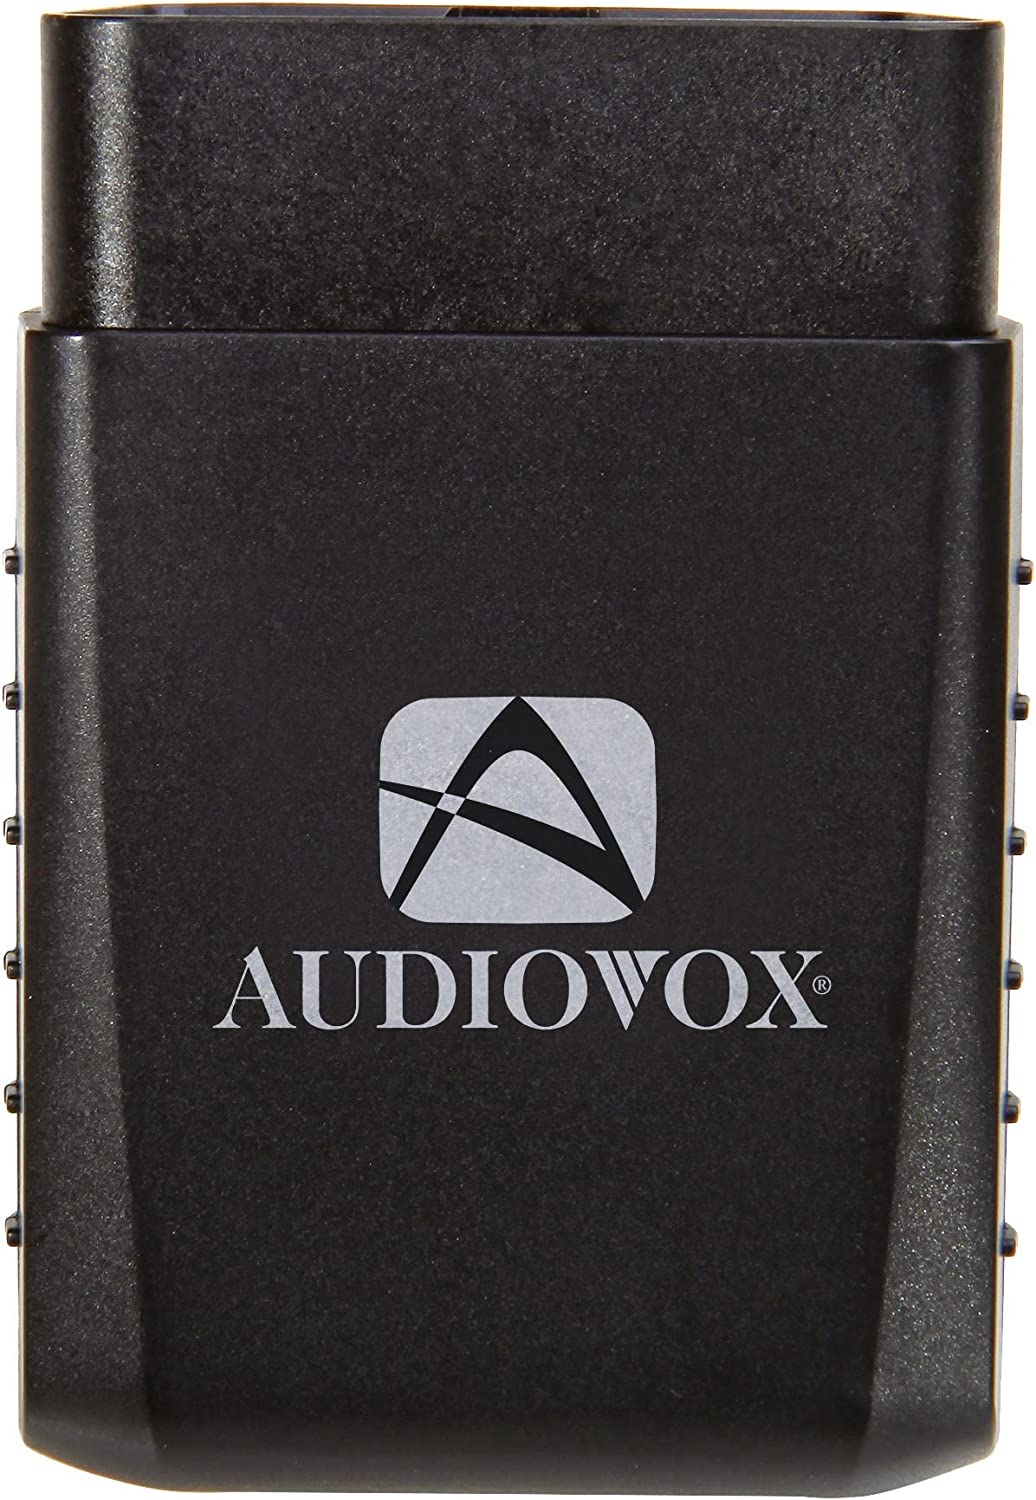 Audiovox Car Connection 2.0 Vehicle Safety and GPS Tracker with Engine Diagnostics Black AT/&T